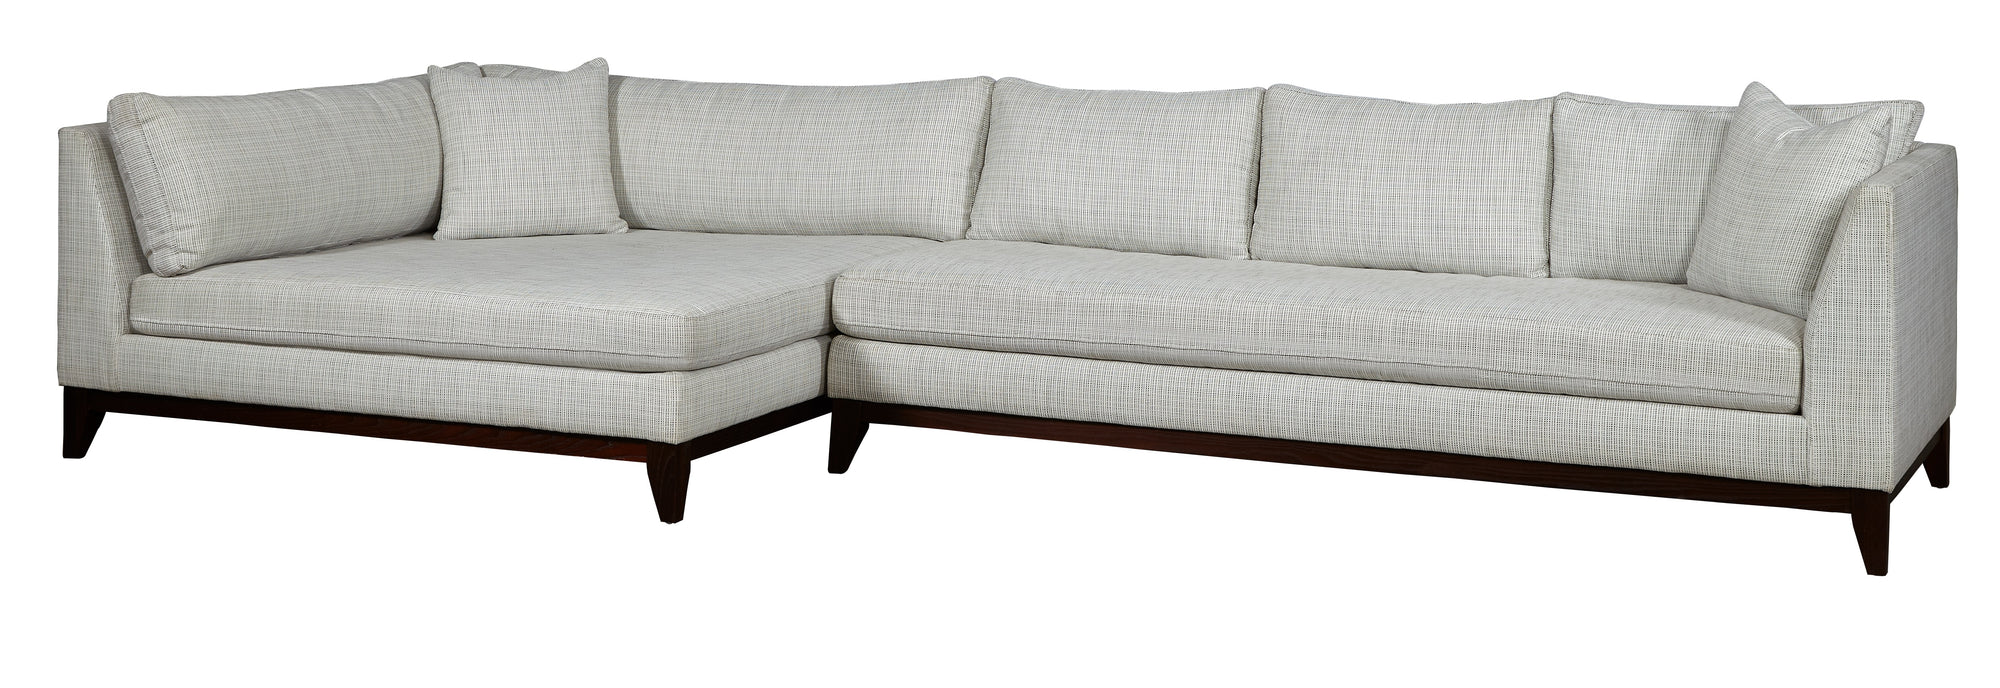 MONTAUK 2 PIECE SECTIONAL